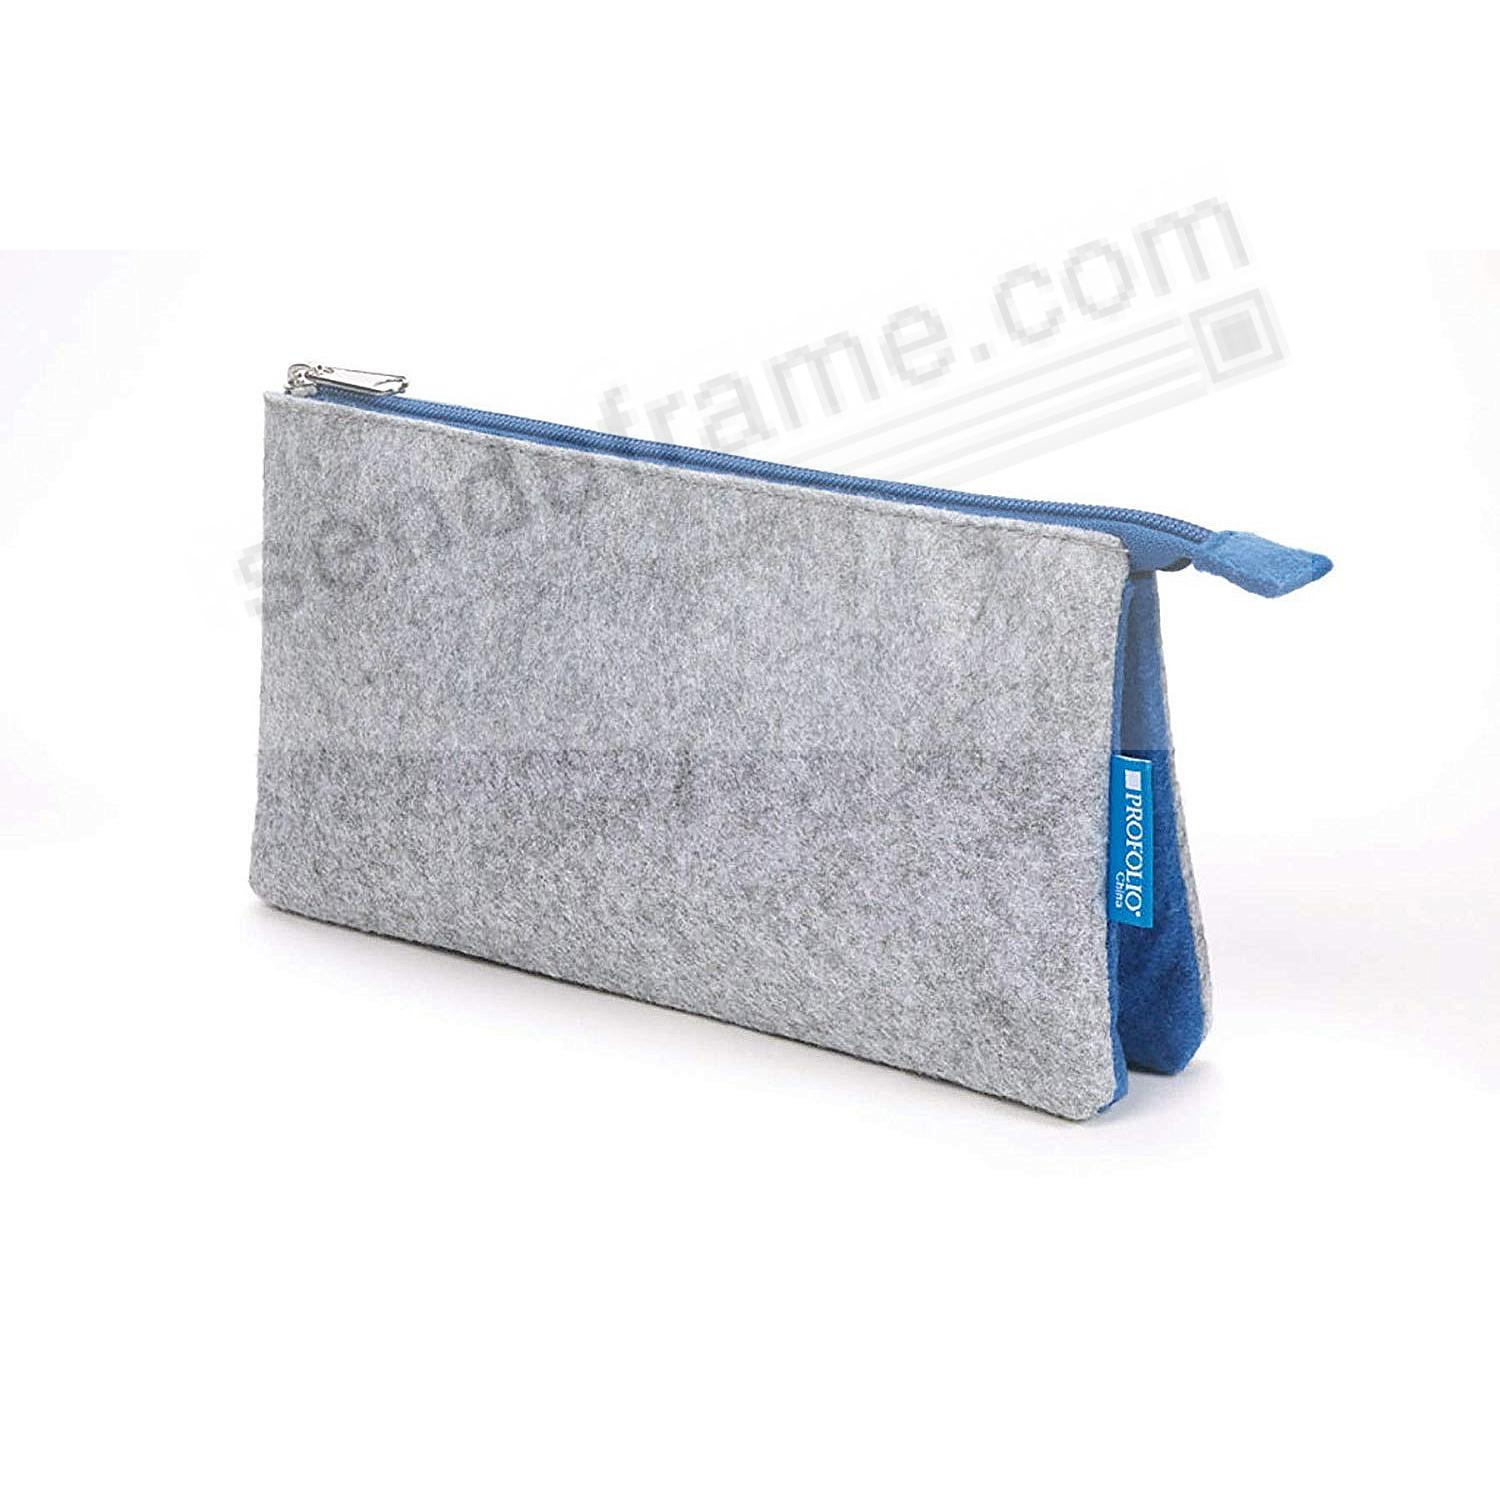 The NEW MIDTOWN (4x7-Medum) POUCH by Itoya - GRAY/Blue